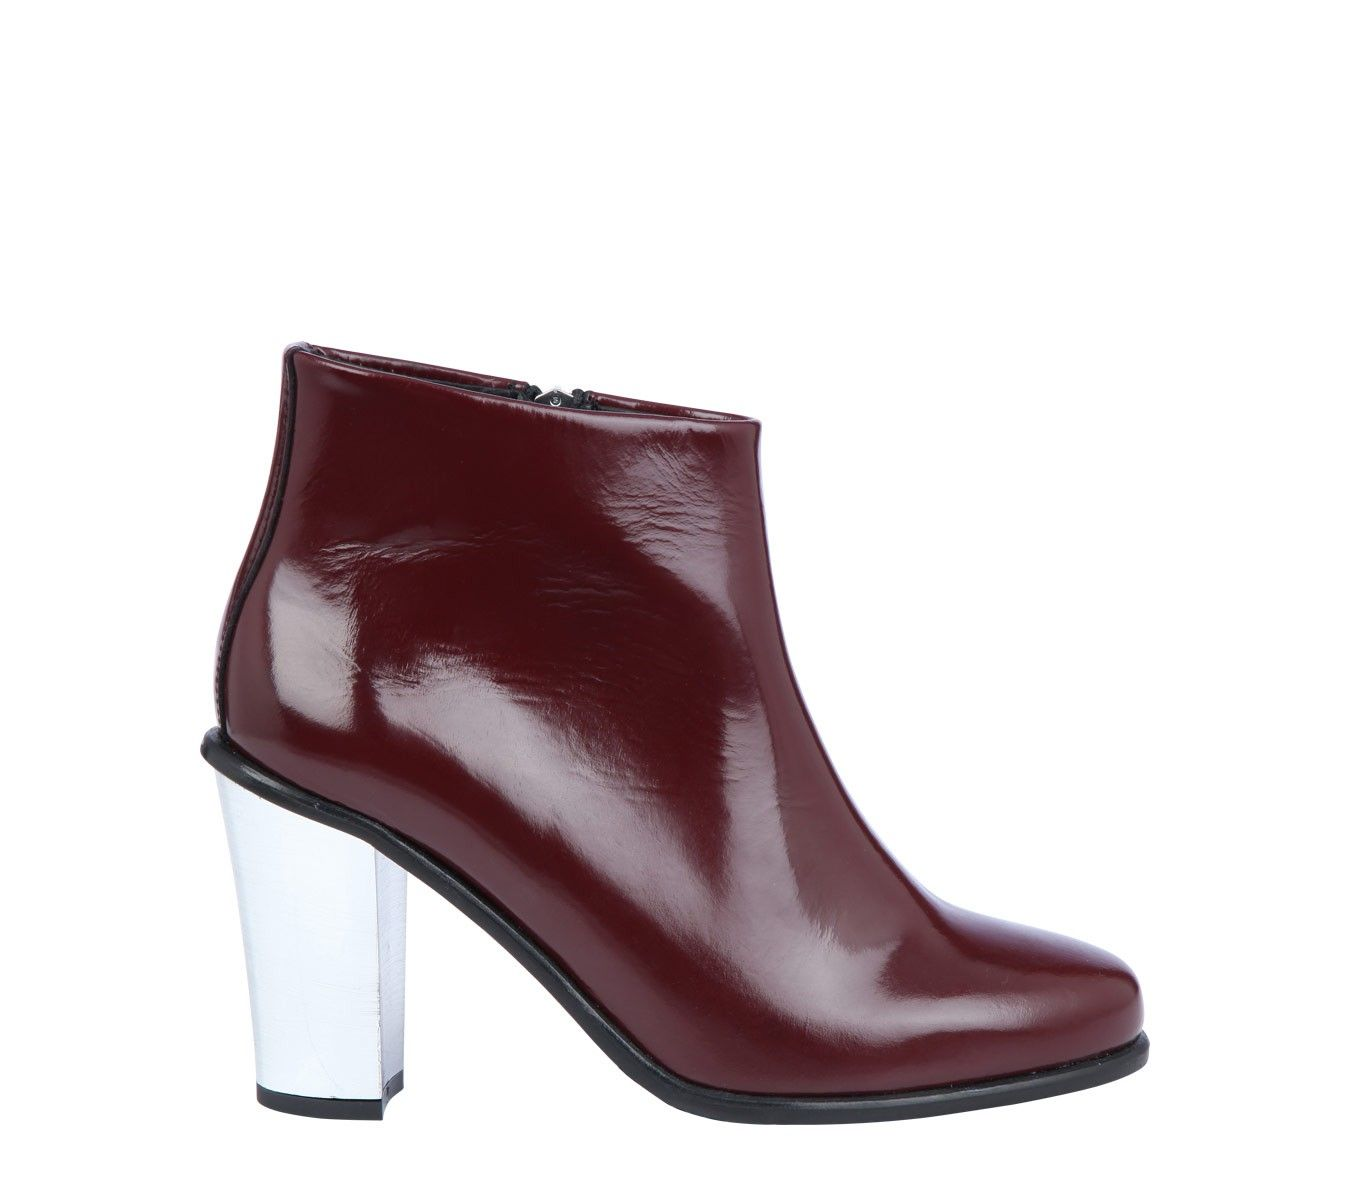 Vicky boots http://eshop.americanretro.fr/accessoires/bottines-cuir-vicky-12971.html